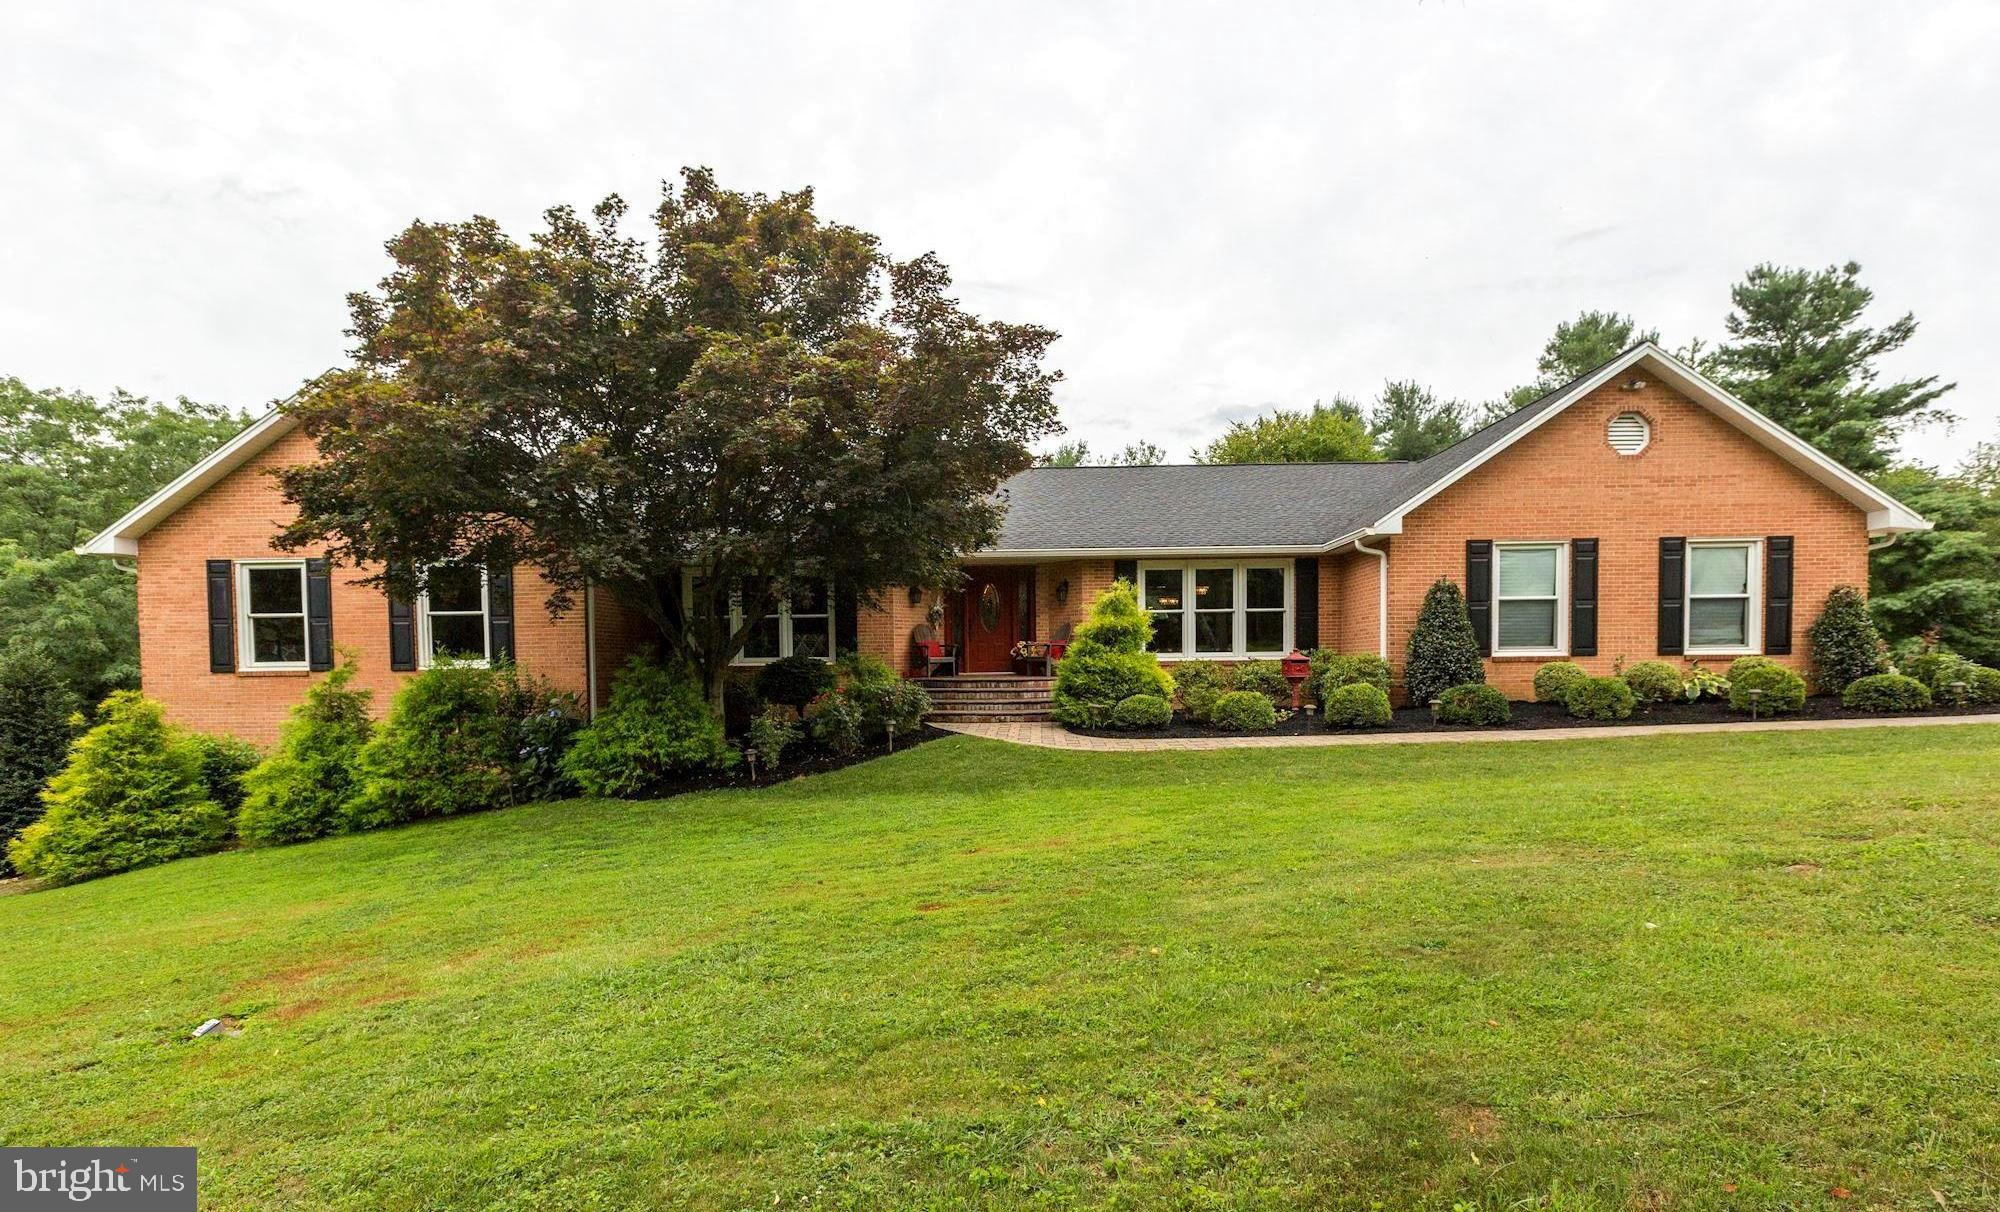 720 WELLER DRIVE, MOUNT AIRY, MD 21771